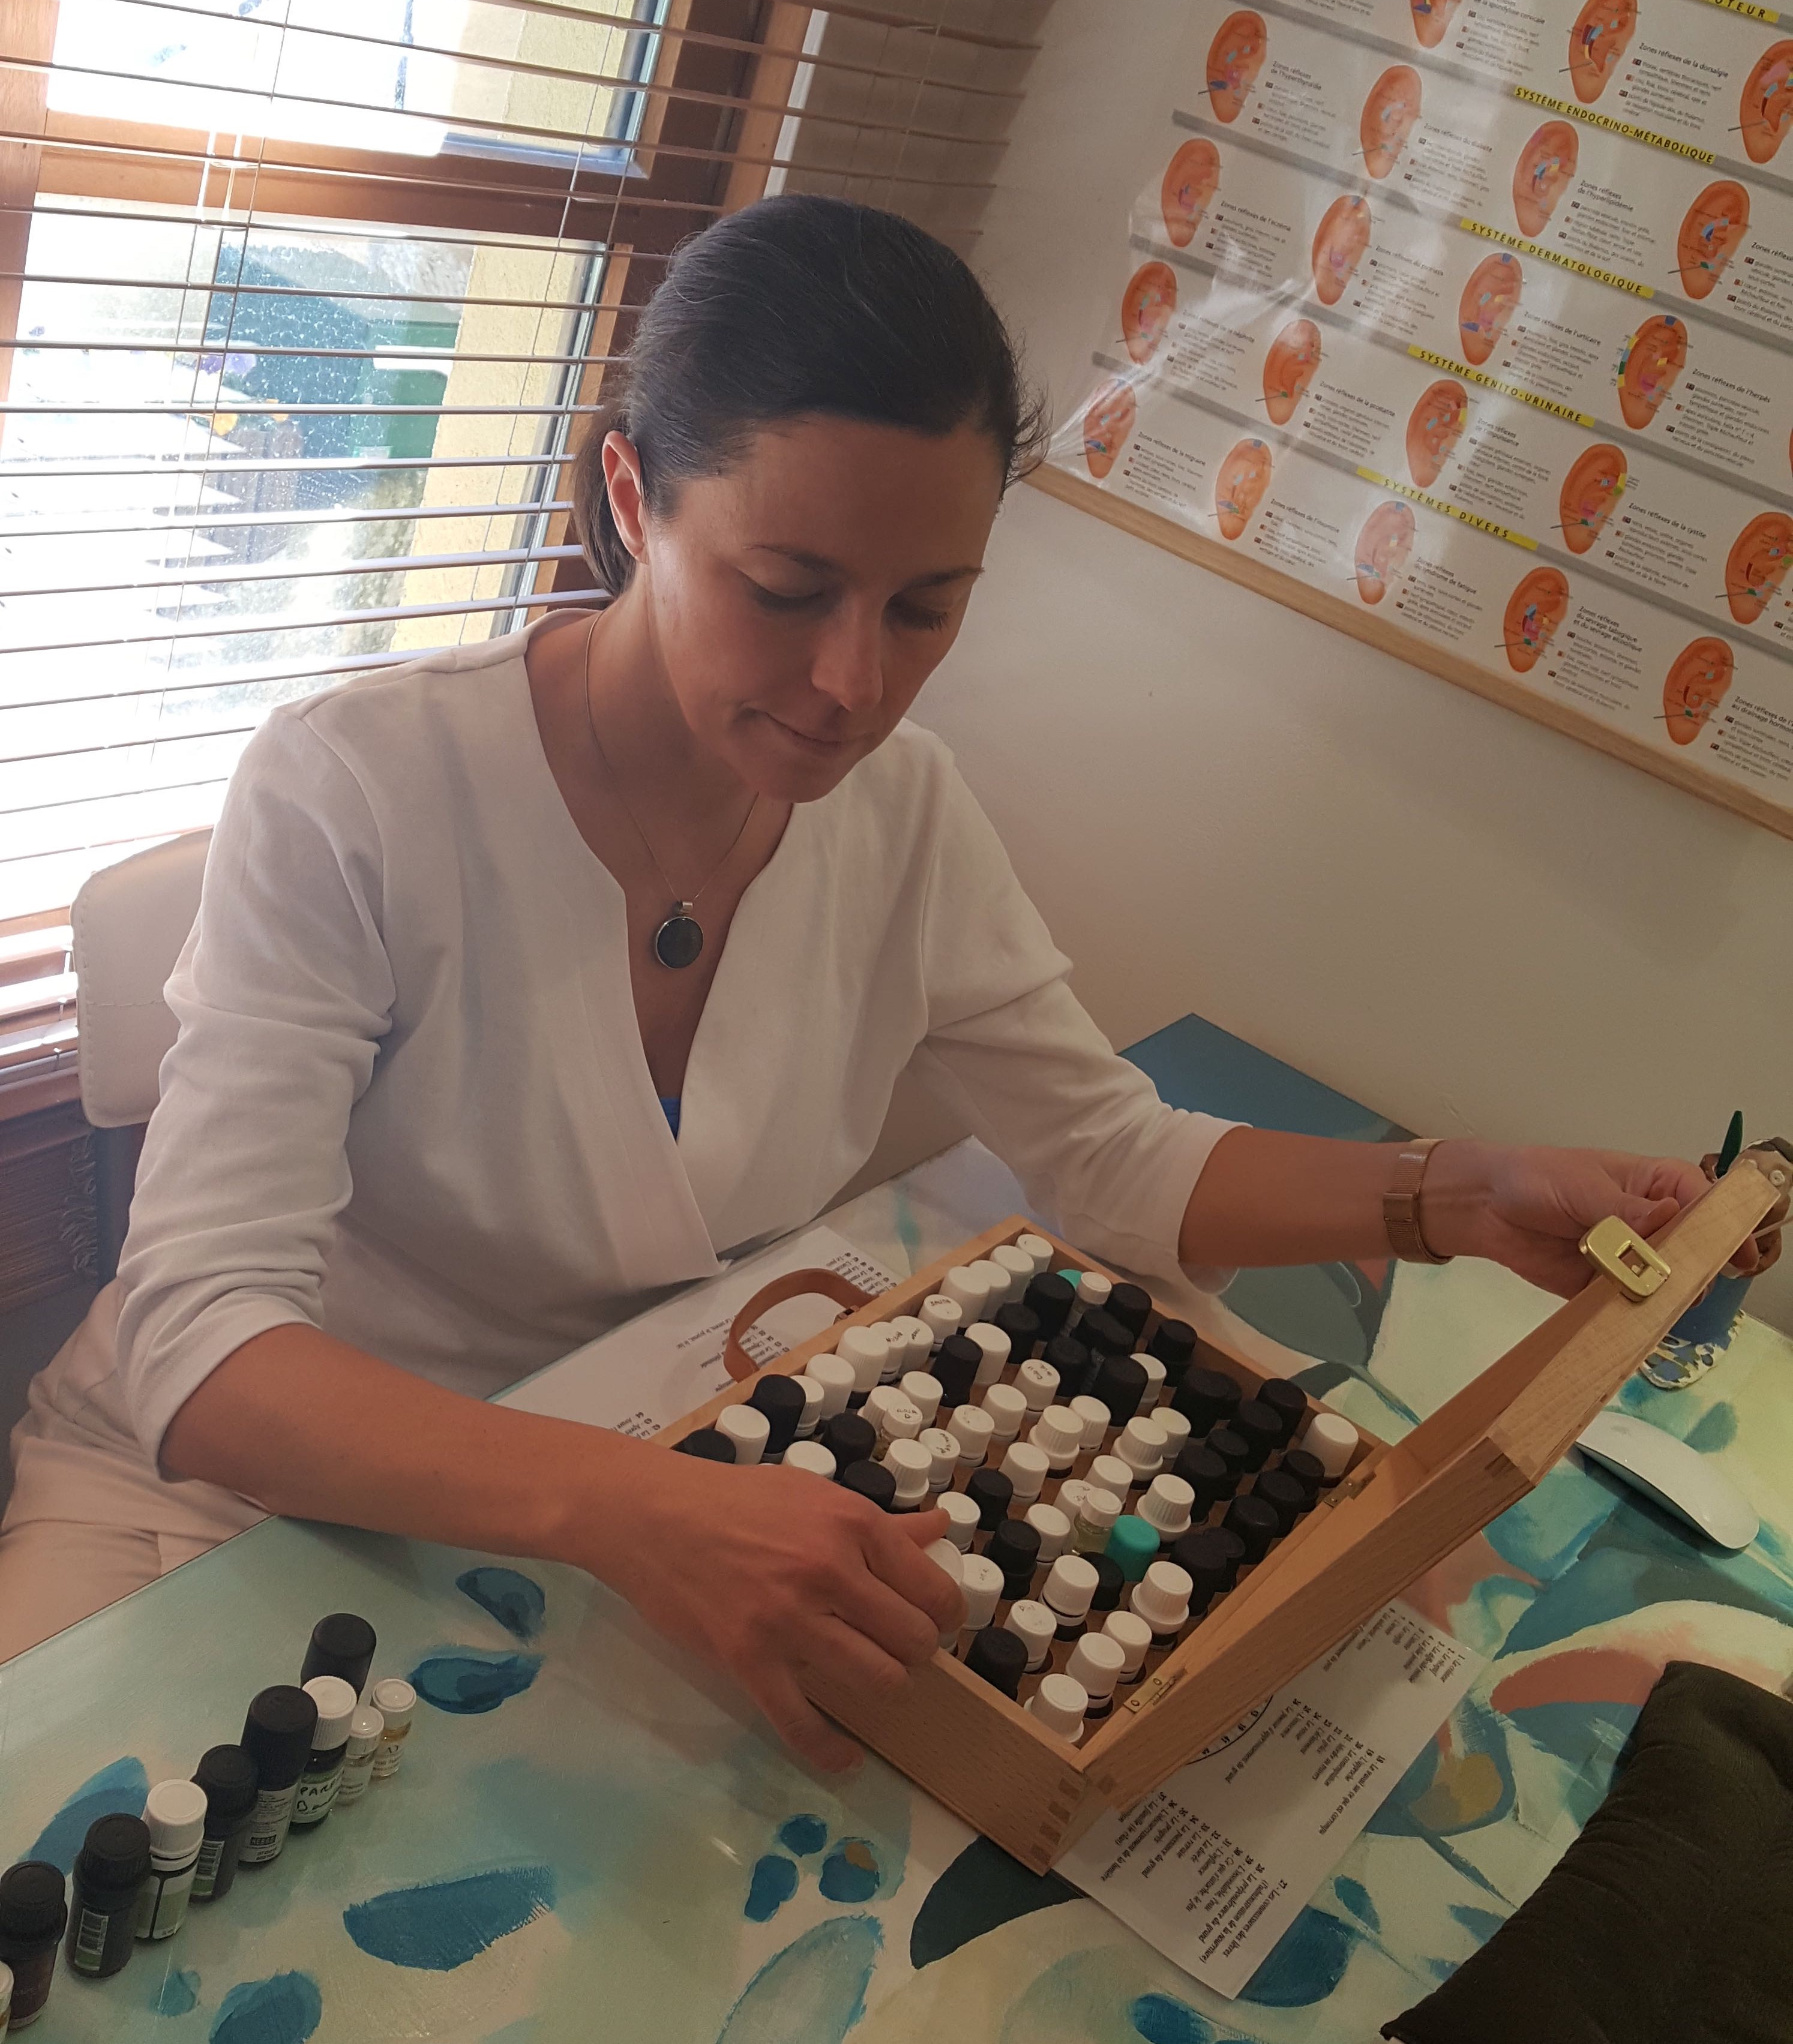 """Winter essential oils"" workshop in Plascassier on Sat. Oct. 14, 9am to 12pm"